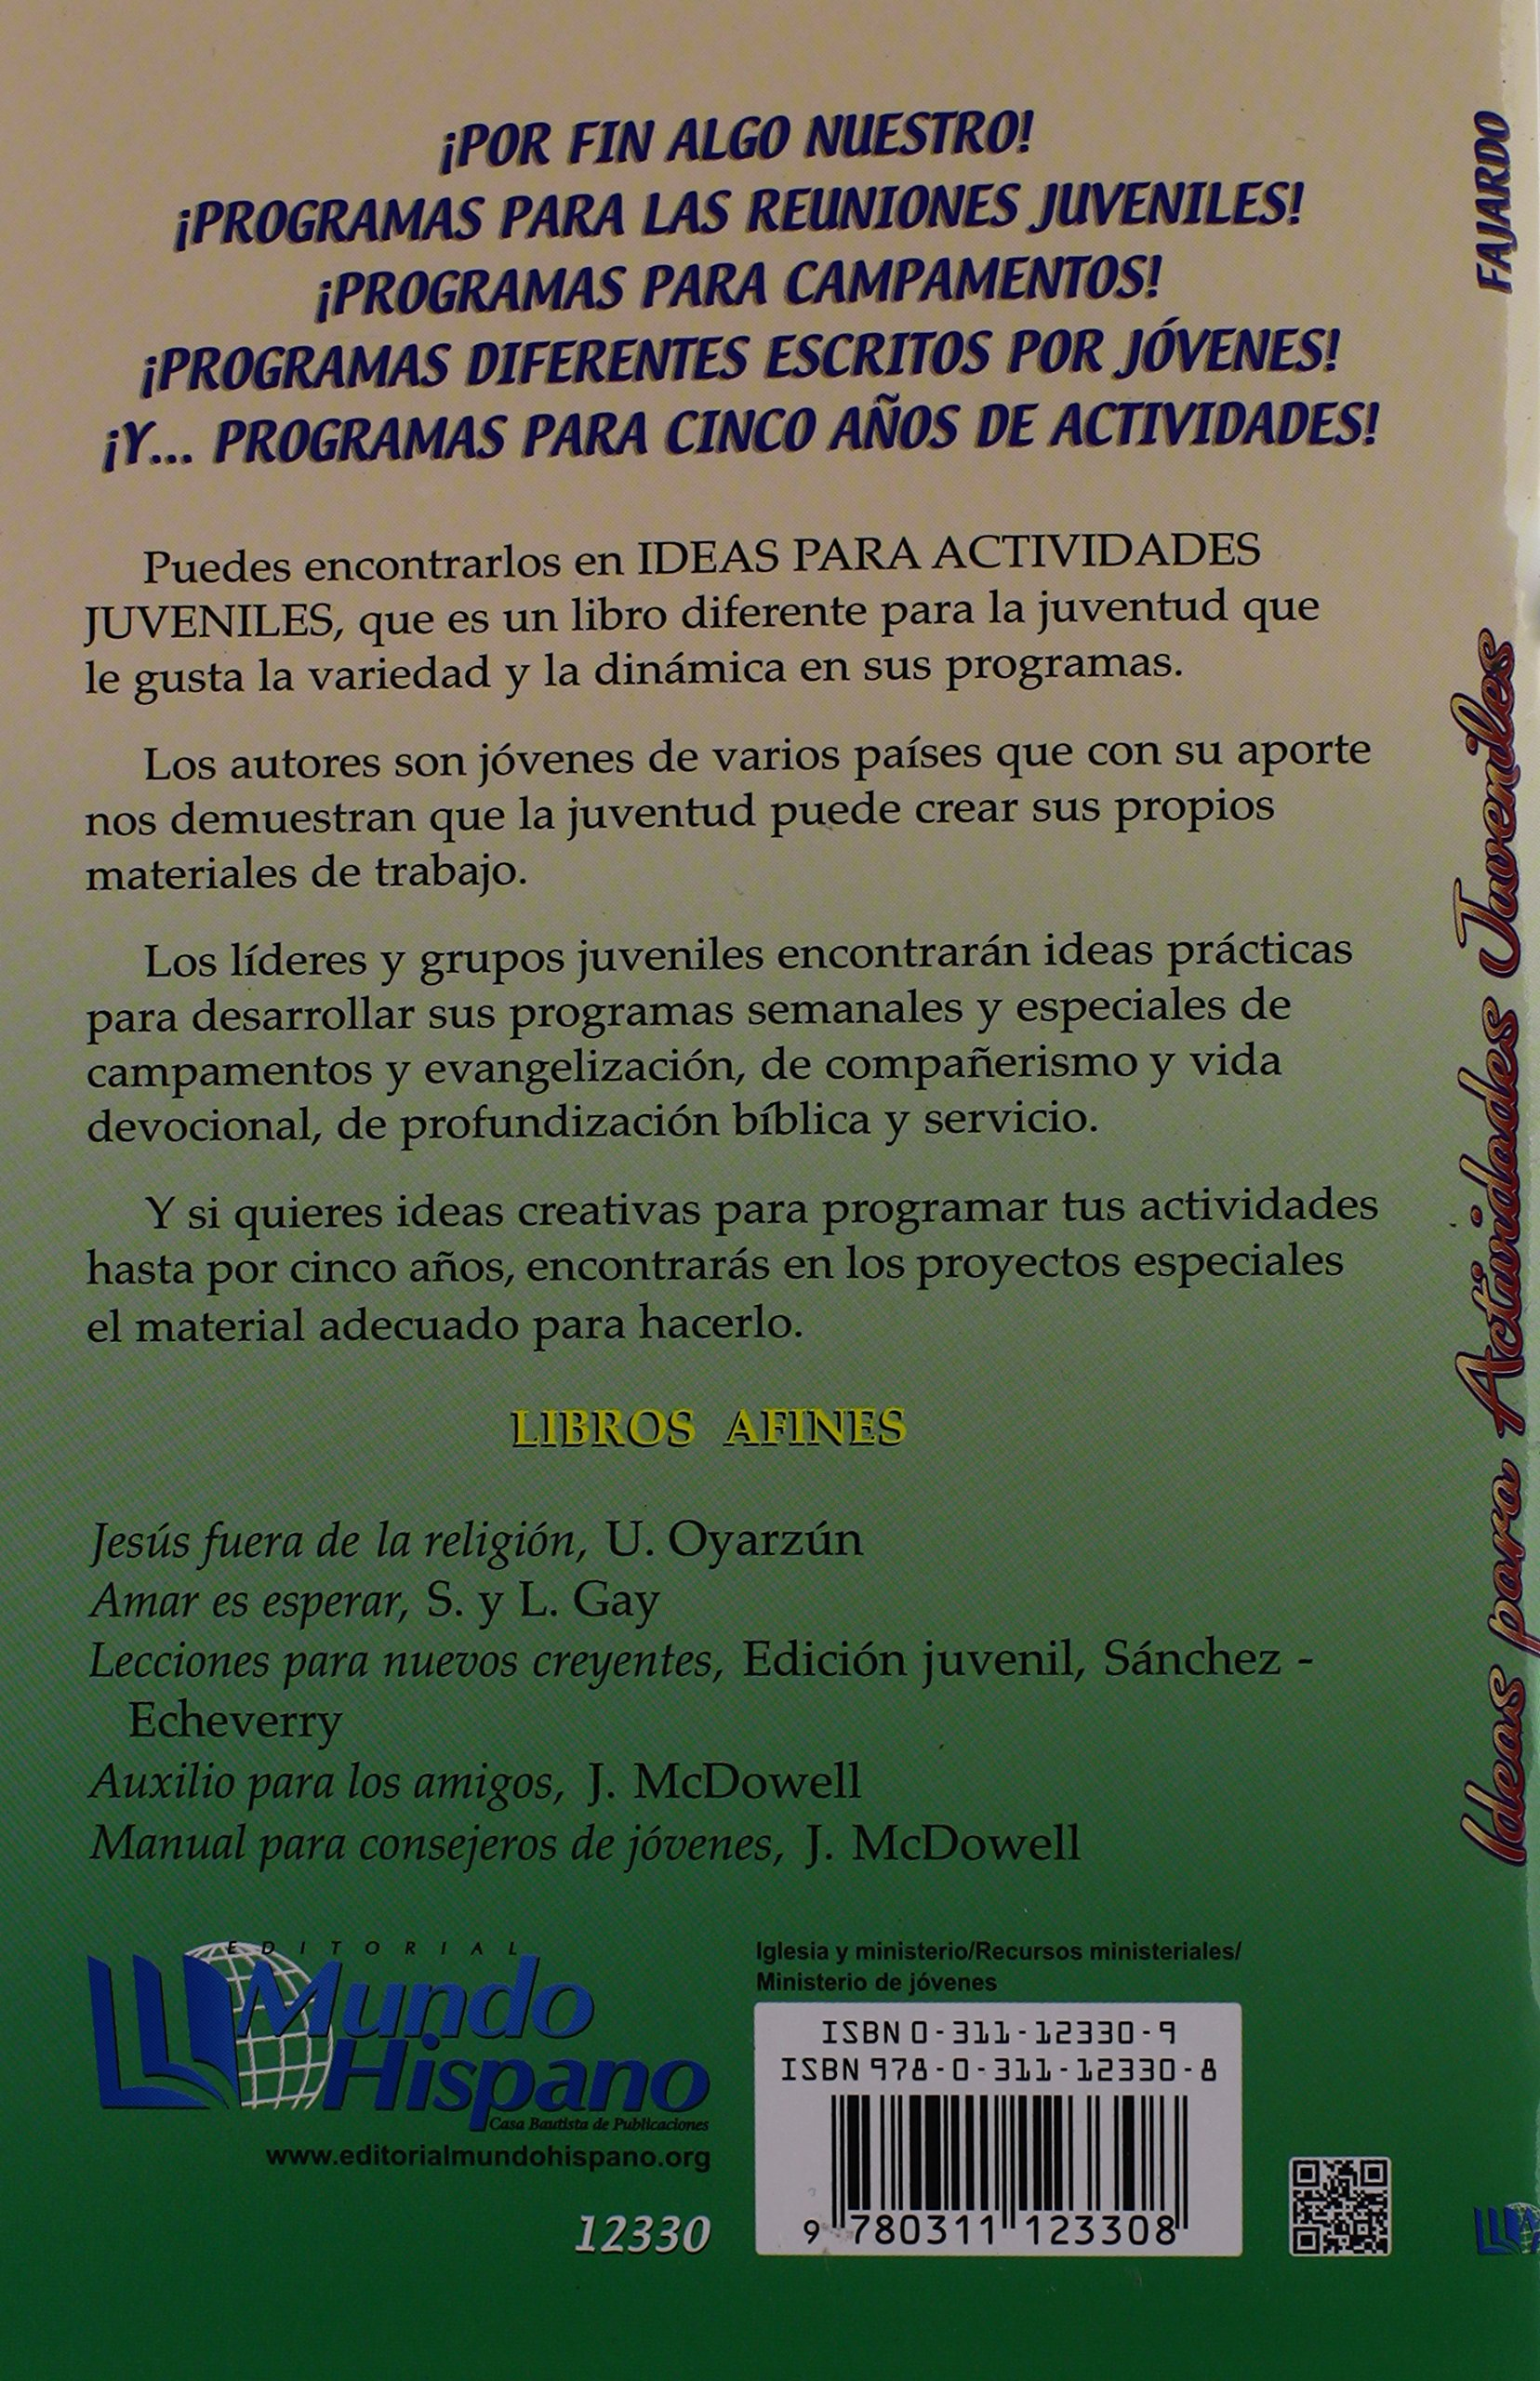 Ideas Para Actividades Juveniles (Spanish Edition): David Fajardo: 9780311123308: Amazon.com: Books